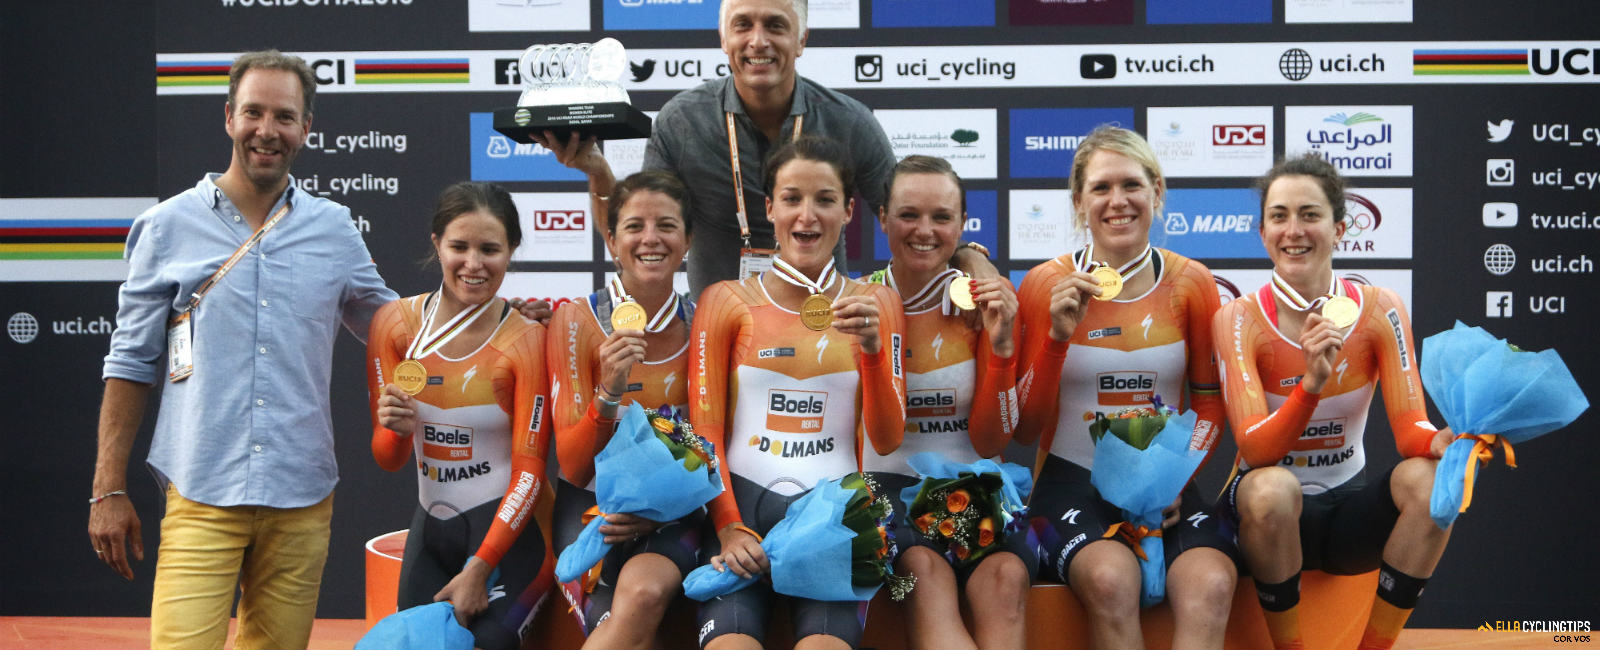 Your 2016 UCI Women's Team Time Trial World Champions.: Boles-Dolmans.